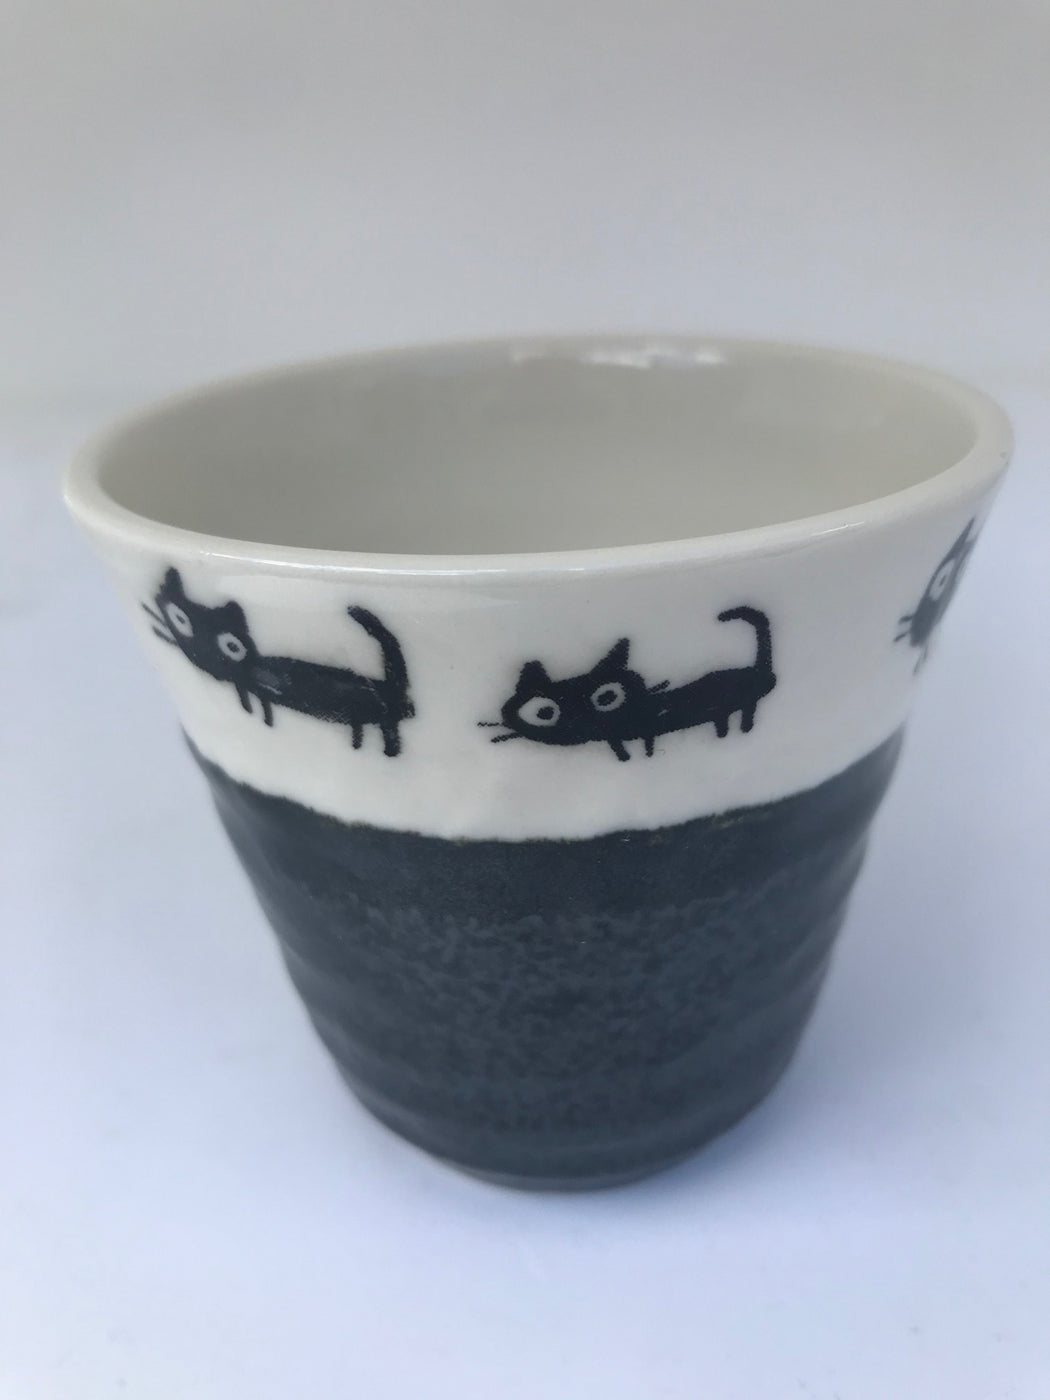 Teacup cat border black base